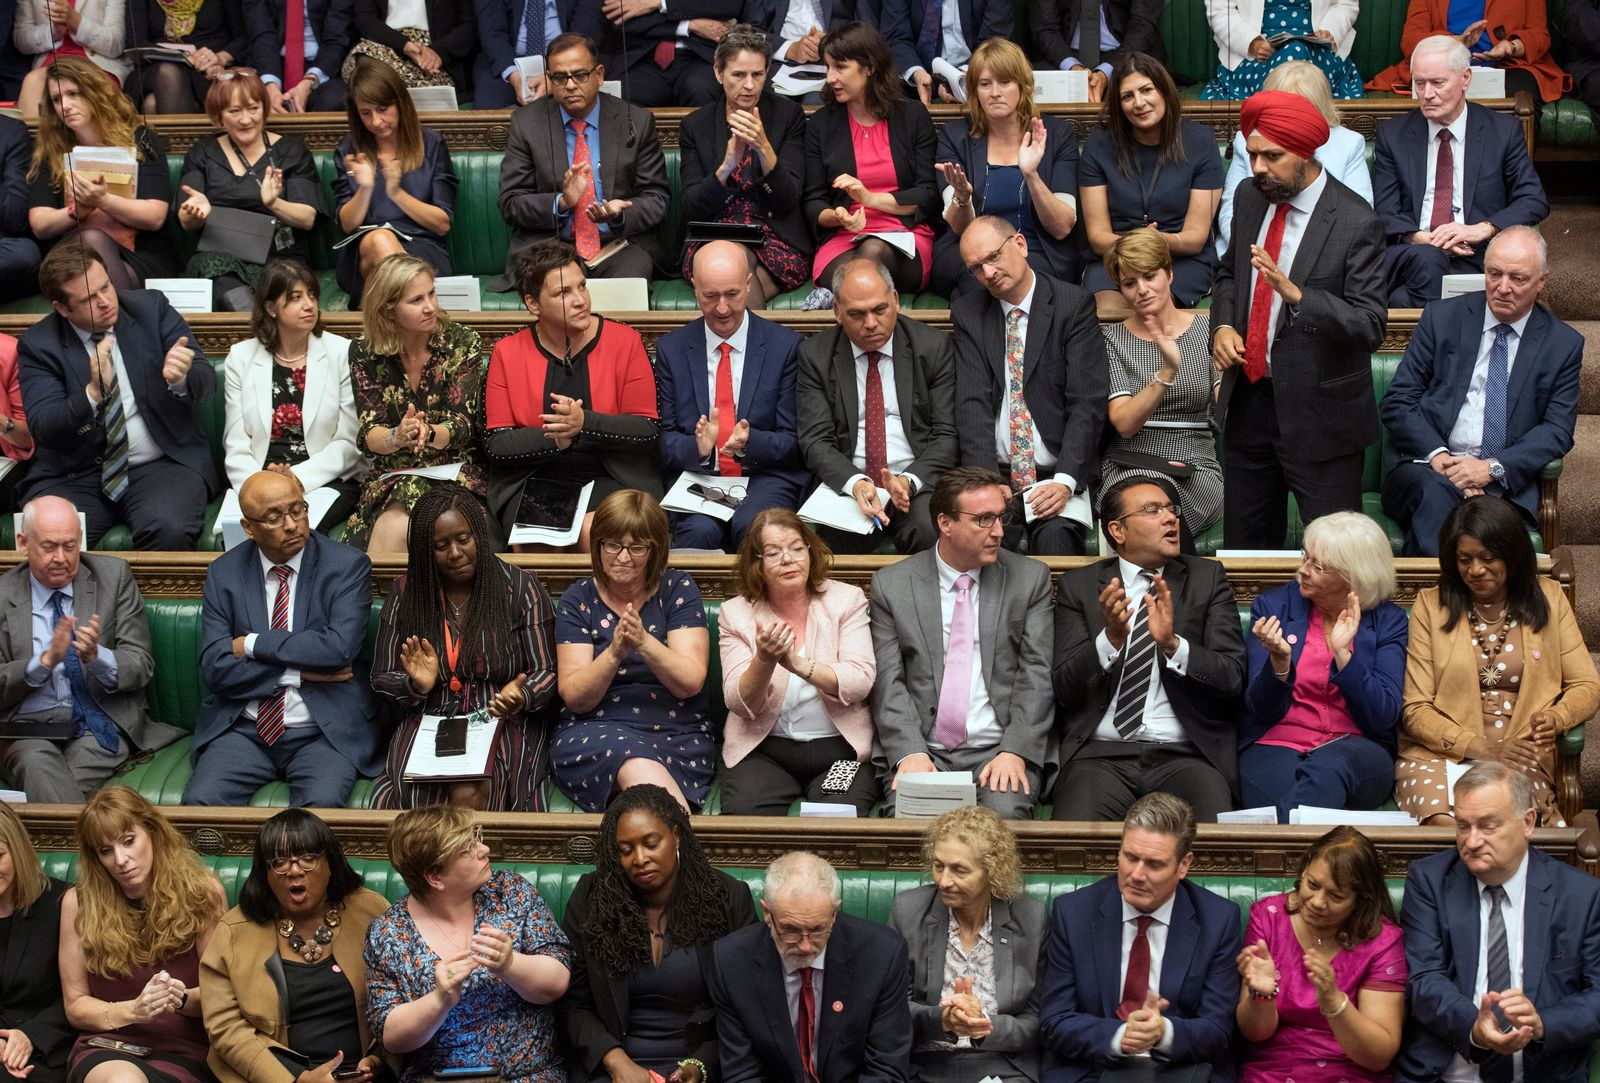 In this handout photo provided by the House of Commons, Labour MP Tanmanjeet Singh Dhesi, standing, speaks during Boris Johnson's first Prime Minister's Questions, in the House of Commons in London, Wednesday, Sept. 4, 2019.(Jessica Taylor/House of Commons via AP)